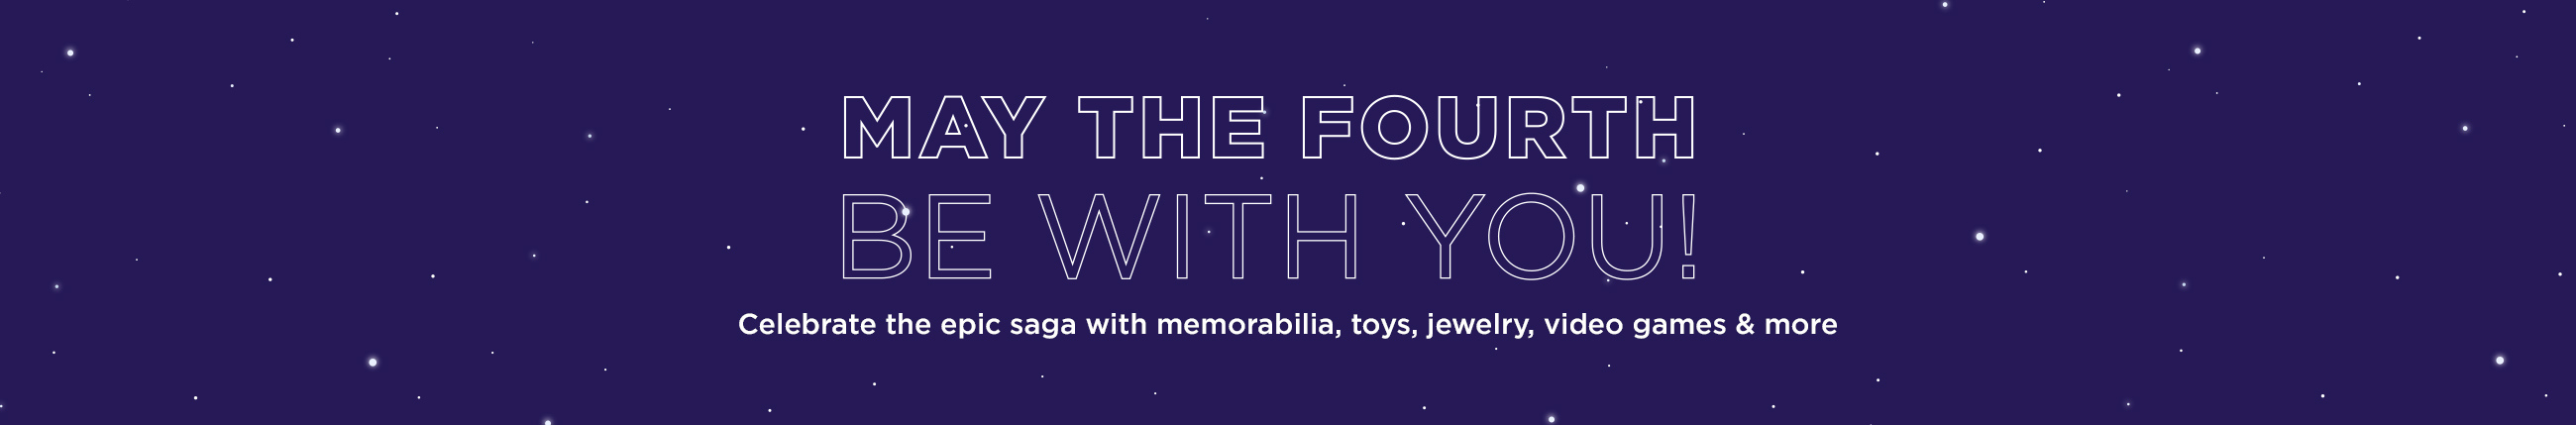 May the 4th  Celebrate the epic saga with memorabilia, toys, jewelry, video games & more